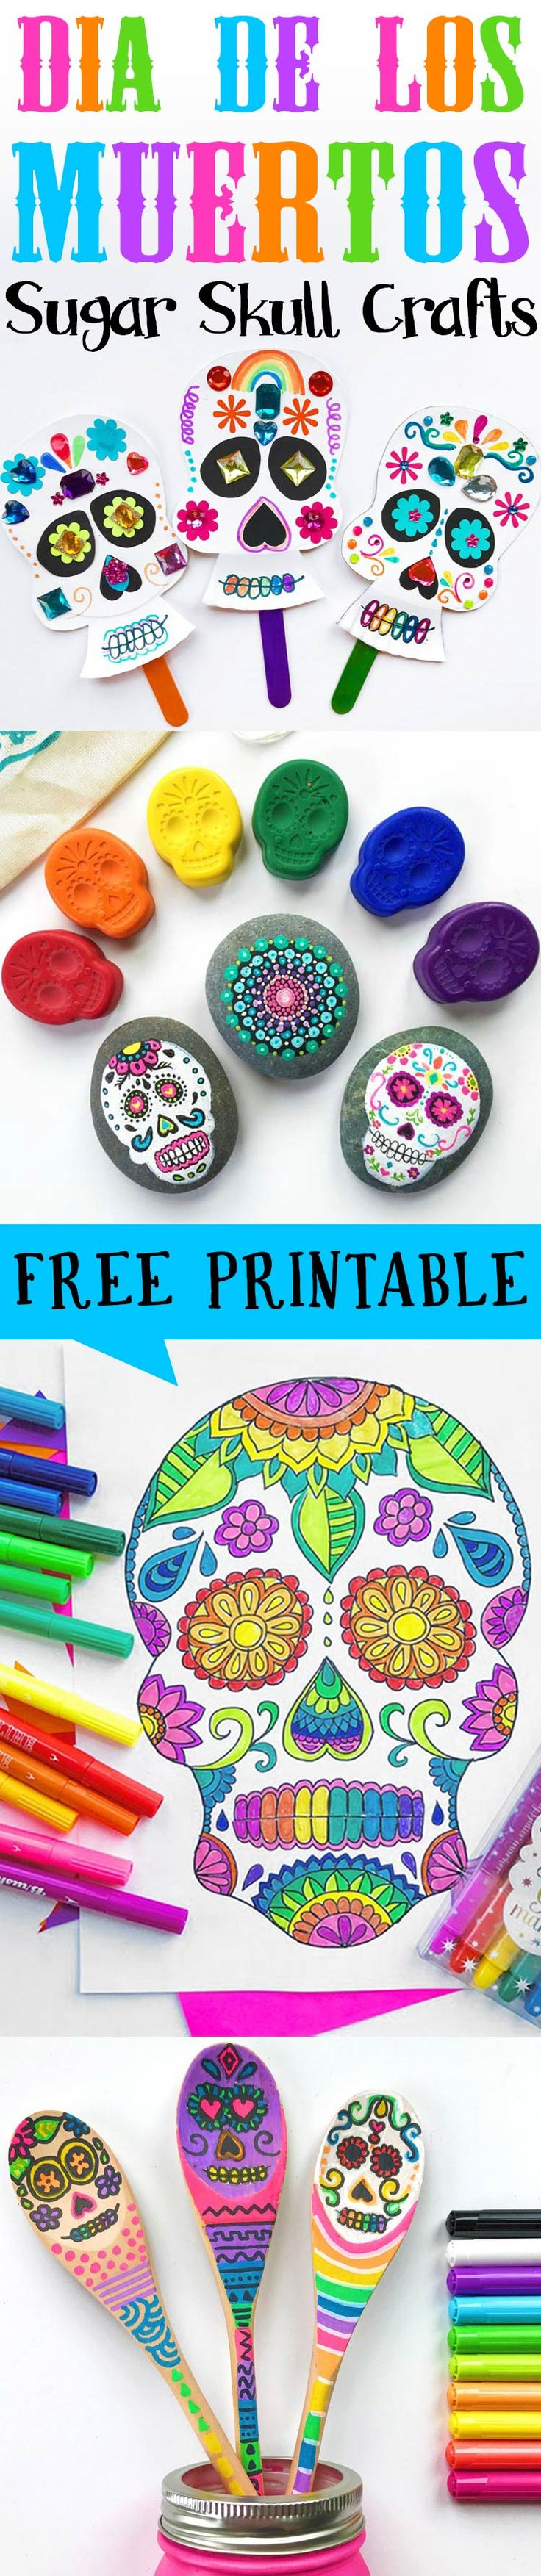 So many fun sugar skull crafts for Day of the Dead and love the free coloring page.